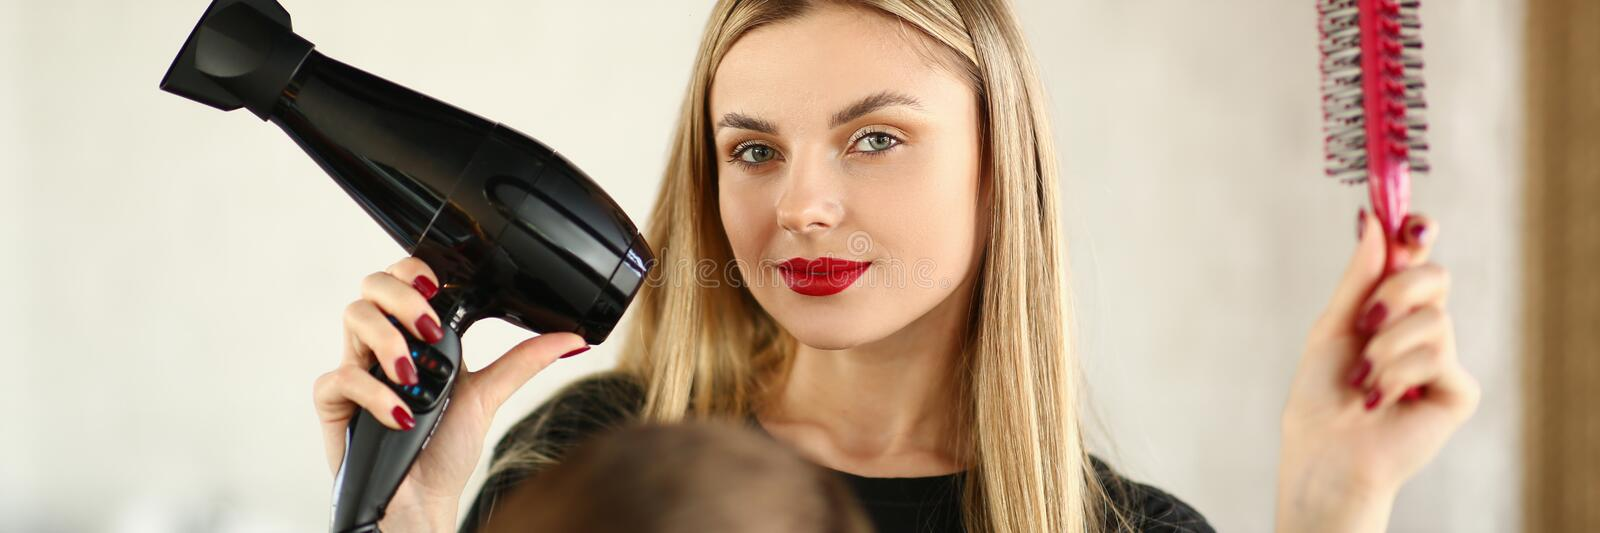 Blonde Hairstylist Showing Blow Dryer and Comb royalty free stock photos